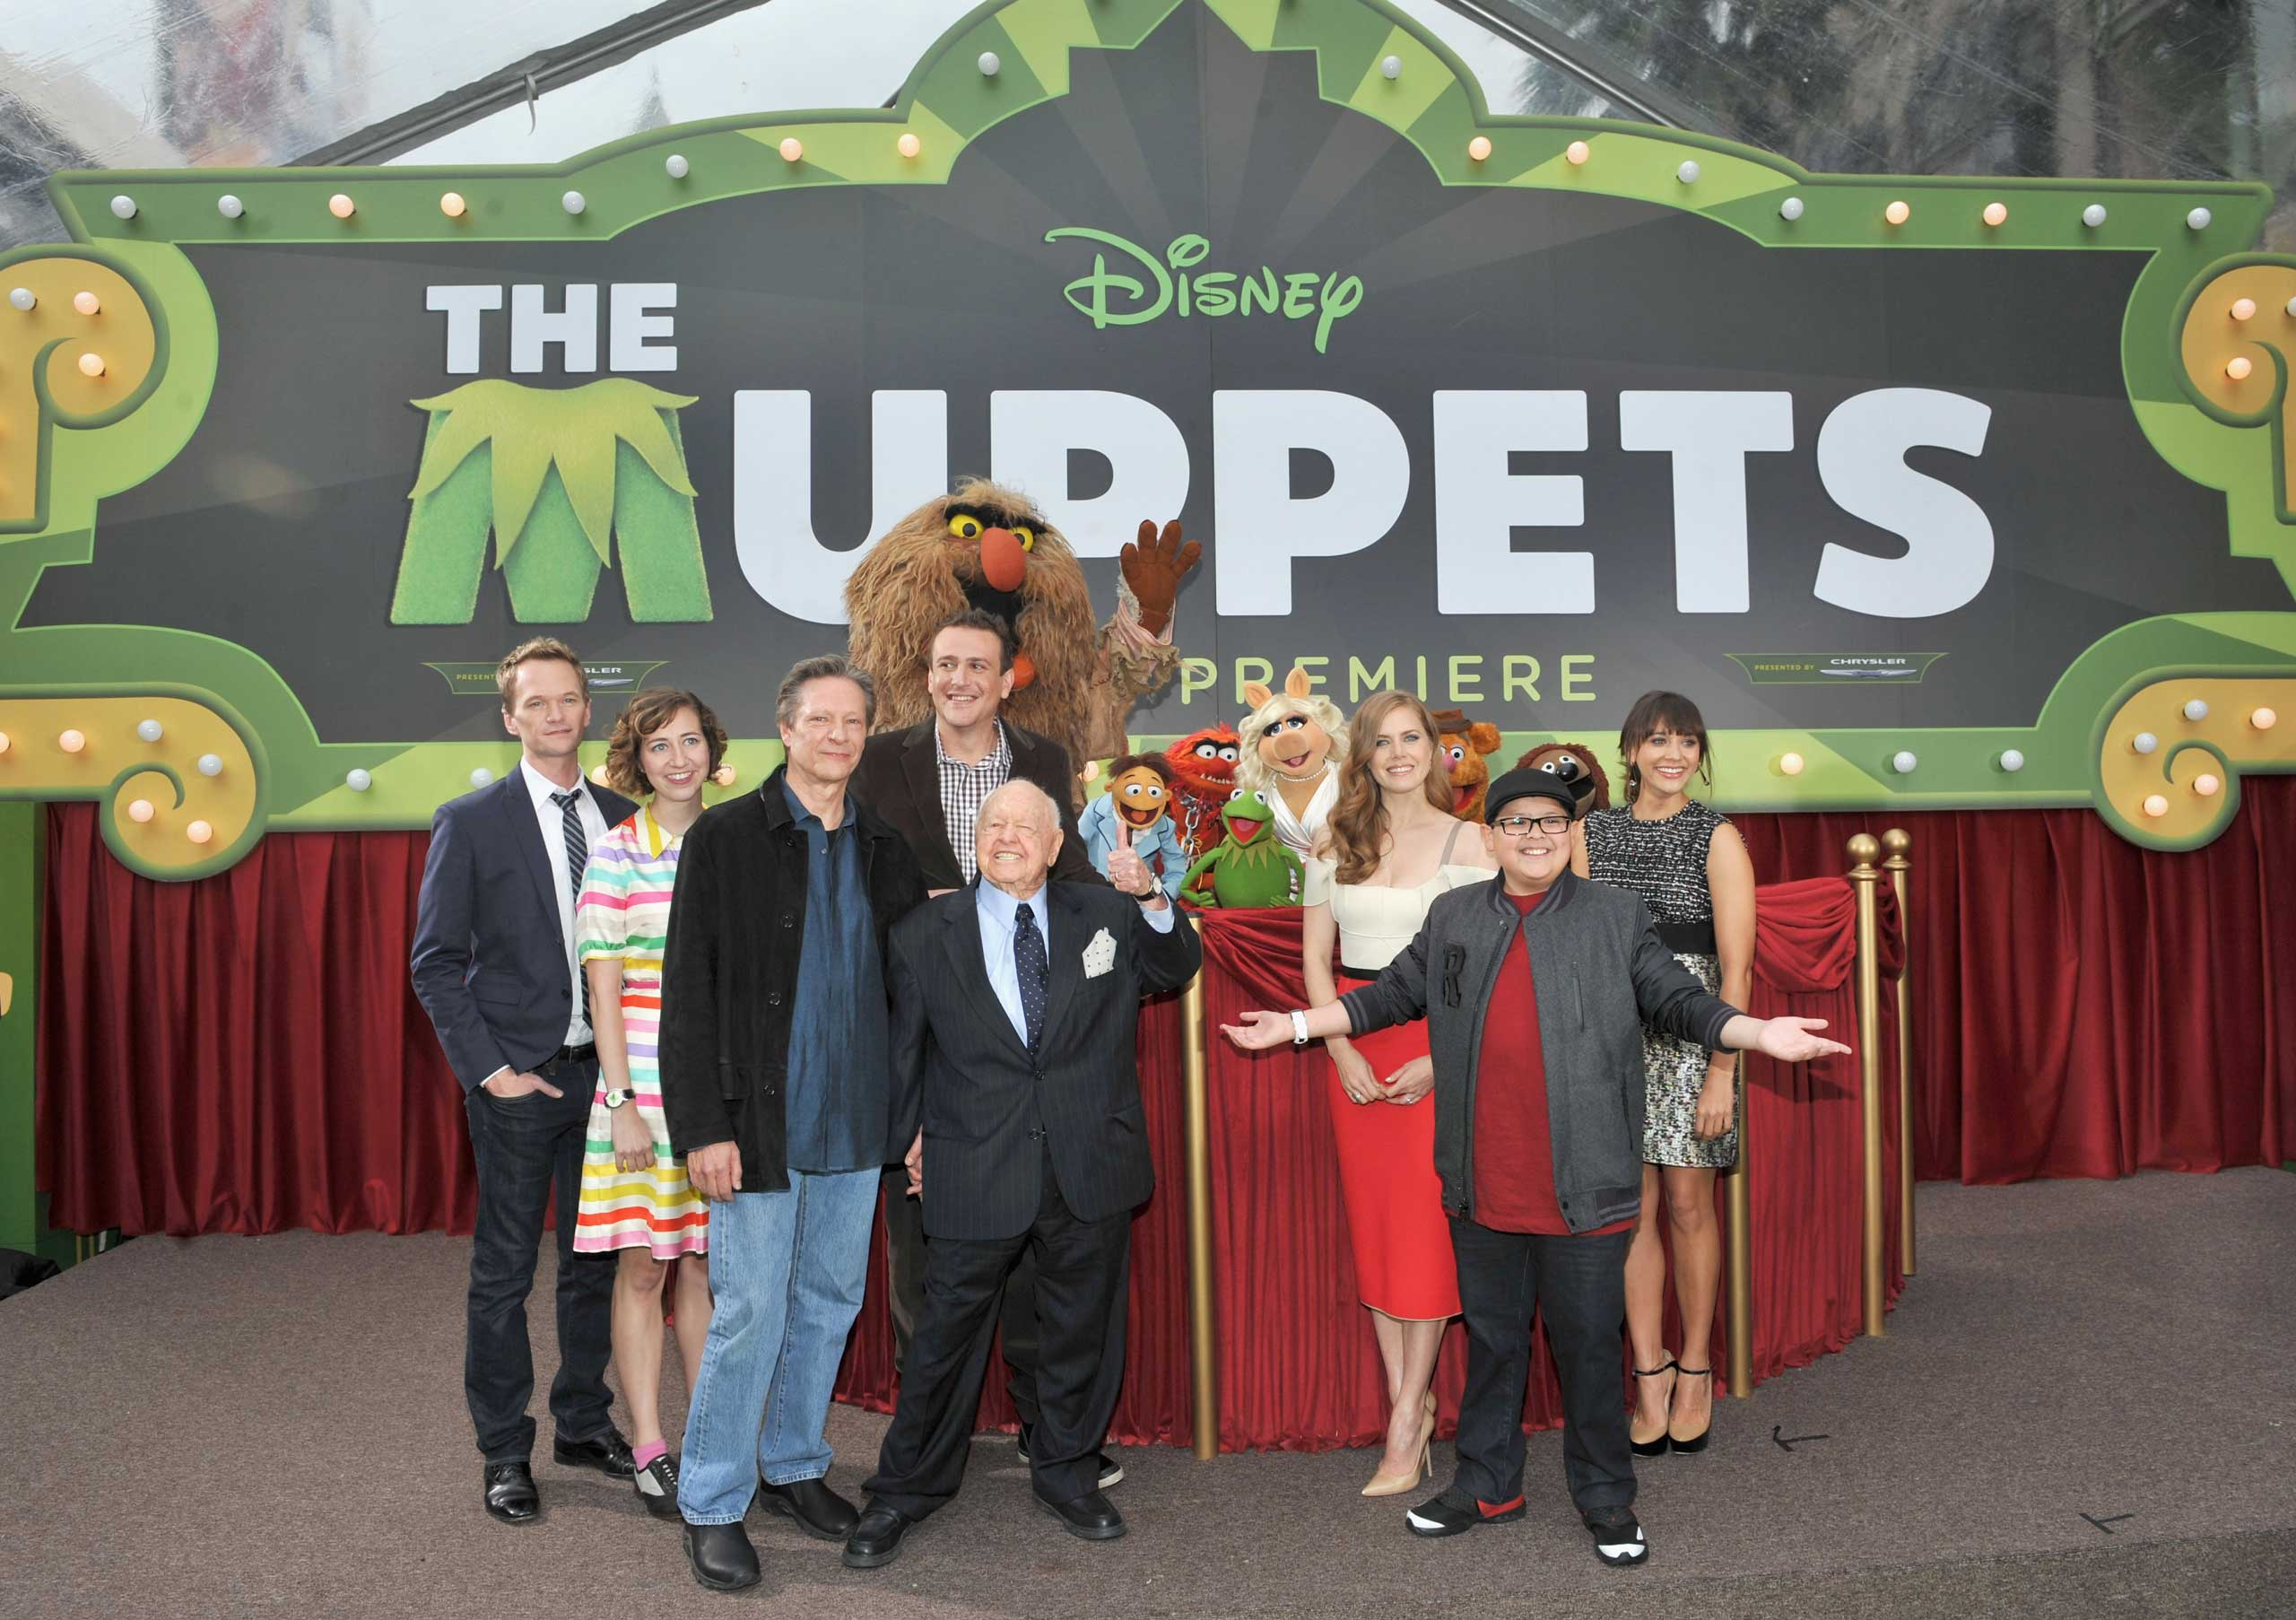 Harris made a 5-second celebrity cameo during the famous  Man Na Mah Na  song in The Muppets movie in 2011.